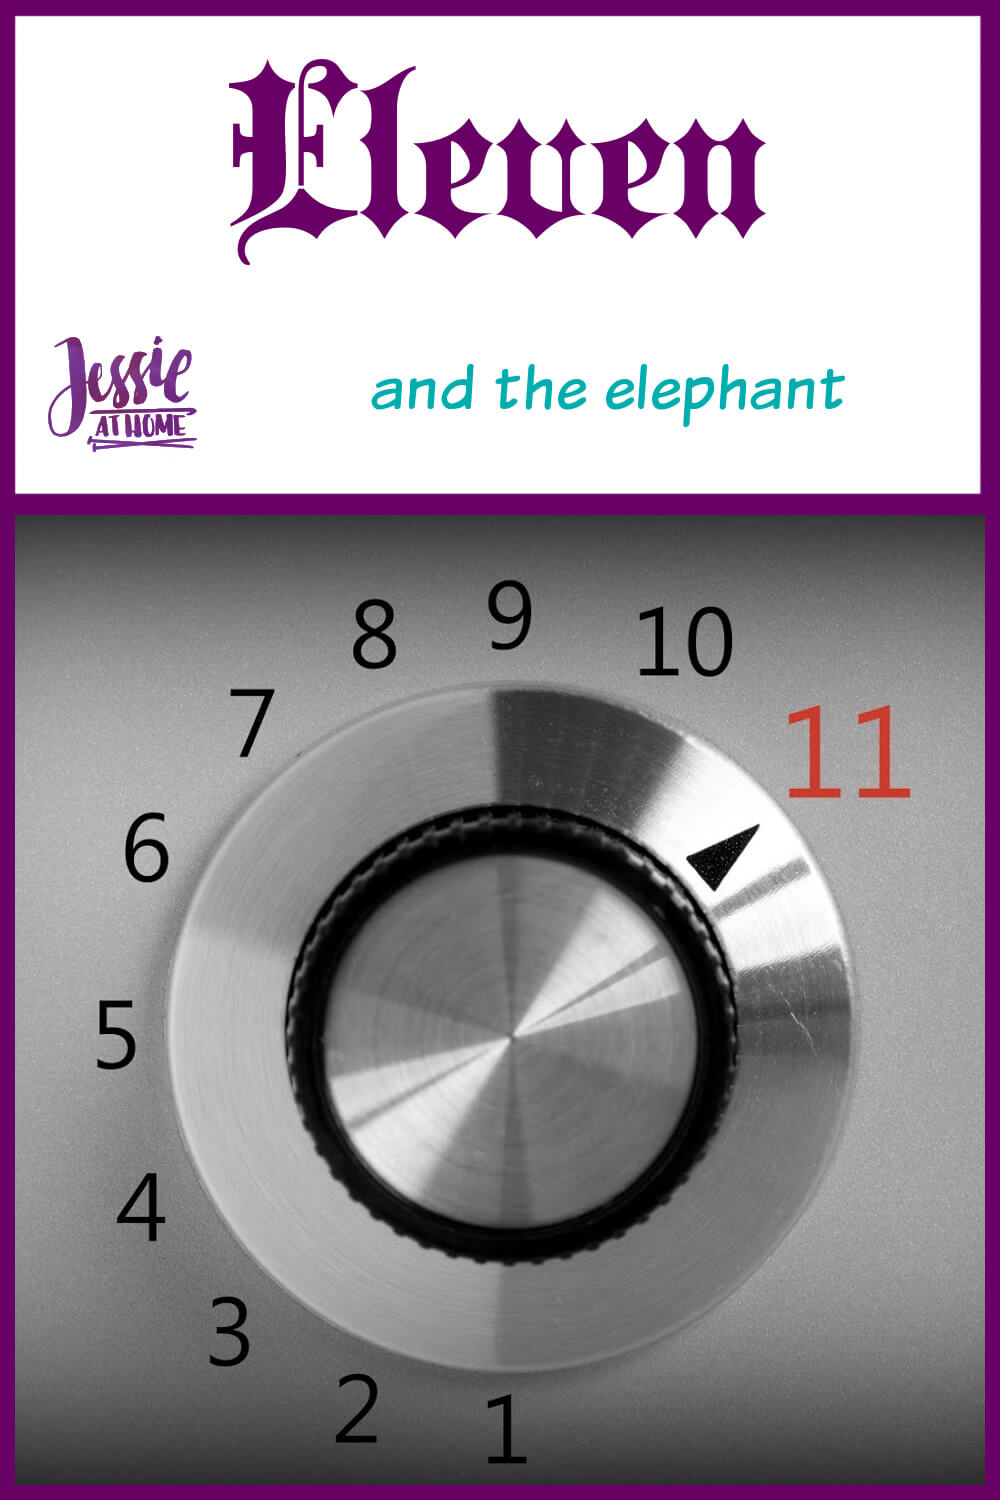 Eleven; and the elephant.